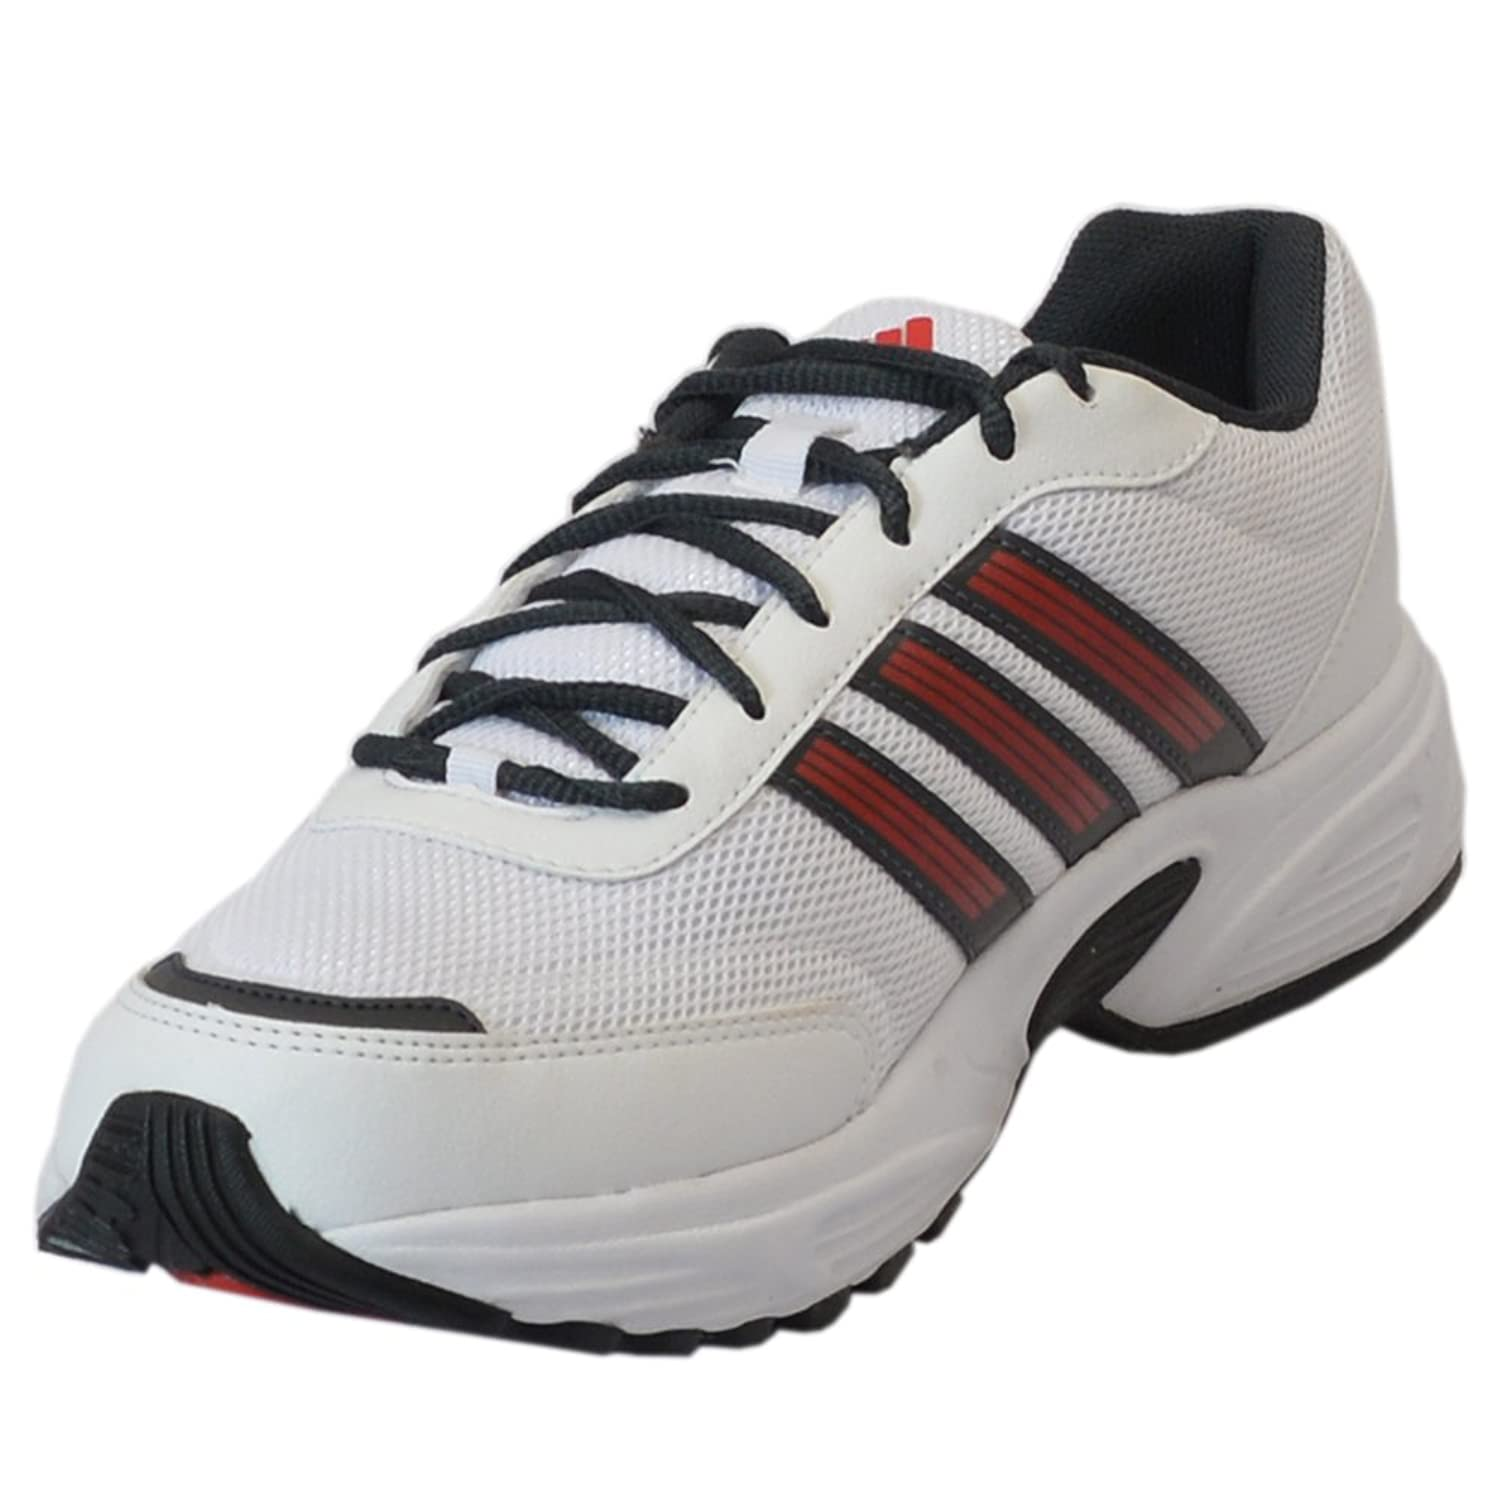 Adidas Men's Alcor White and Black Running Shoes - UK 8: Buy Online at Low  Prices in India - Amazon.in